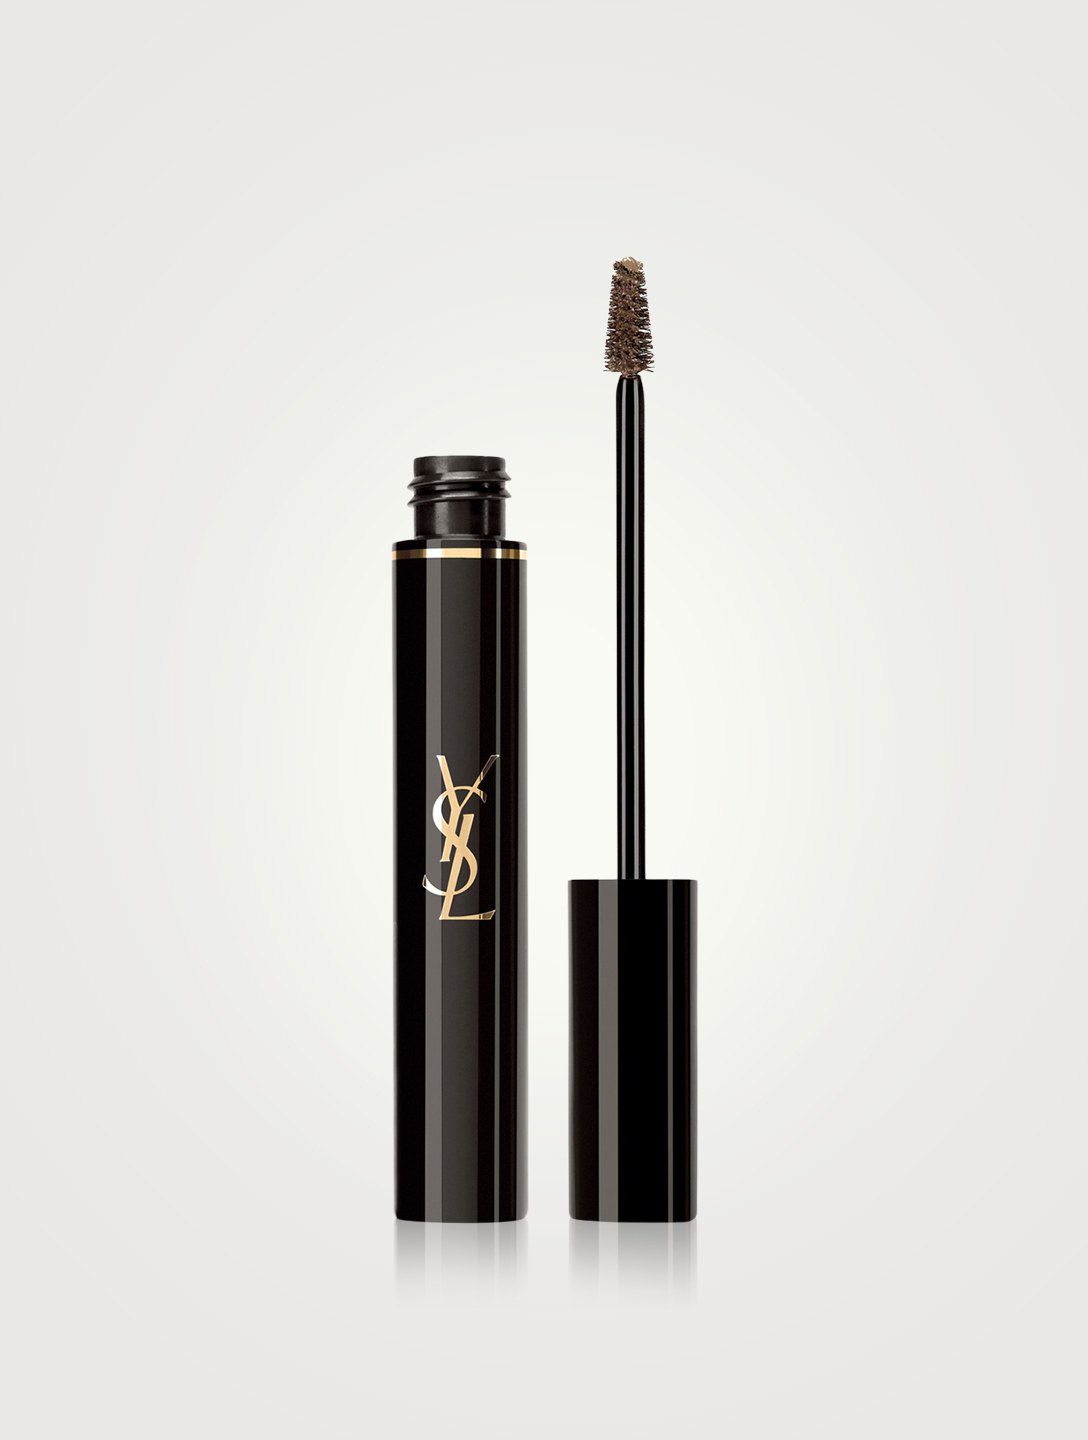 YVES SAINT LAURENT Mascara Couture Brow Beauté Marron